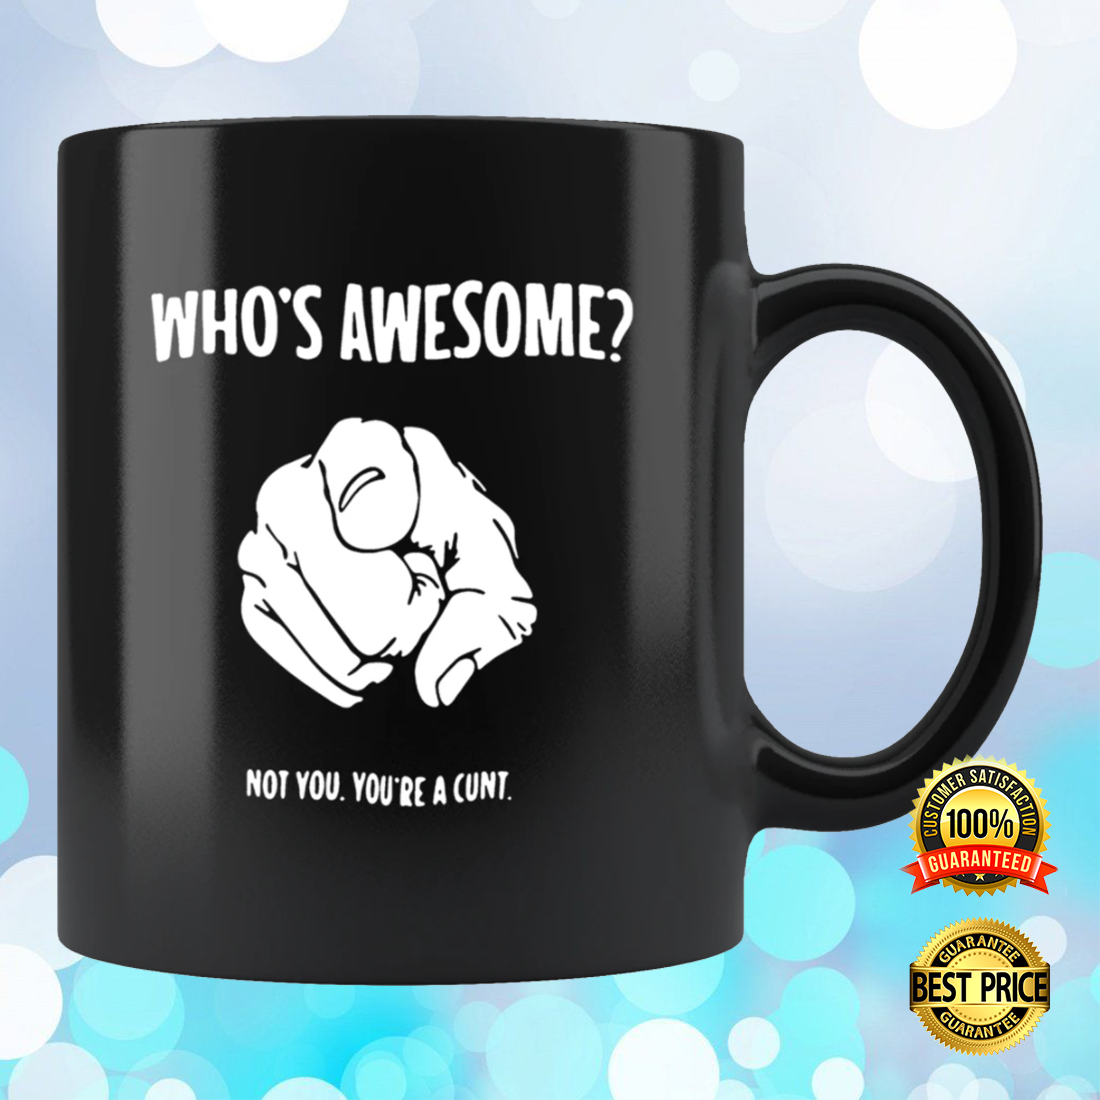 Who s awesome not you you re a cunt mug 2